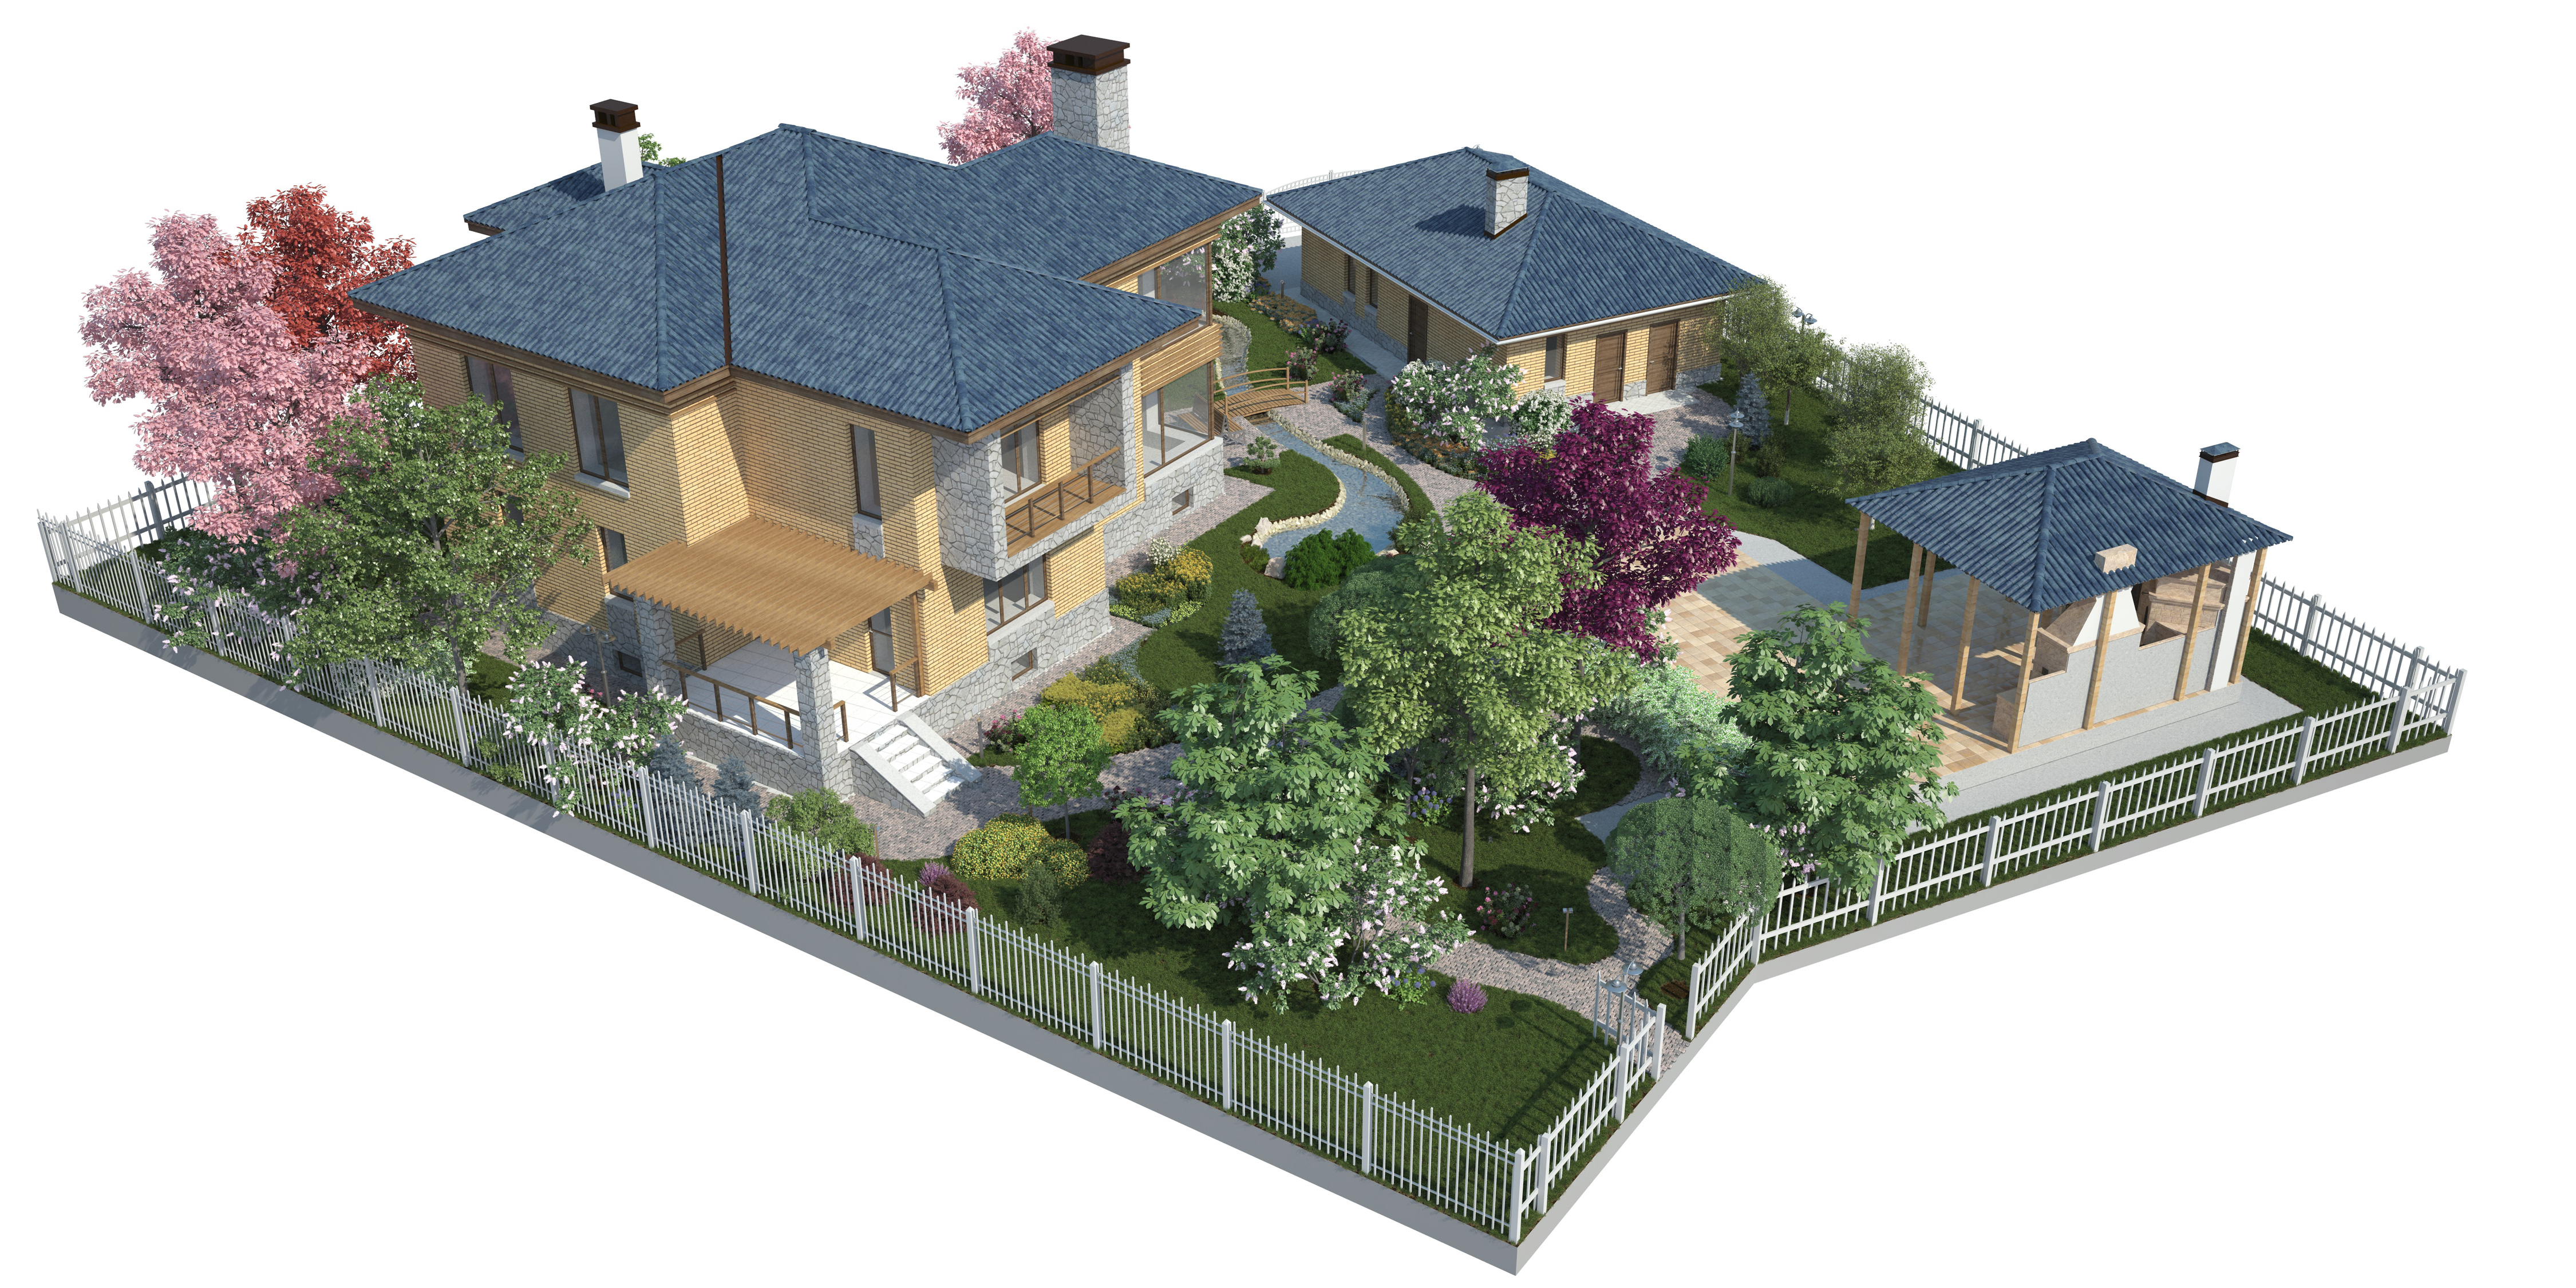 The backyard garden visualization n2 by i t h i l on for Garden design in 3d using sketchup